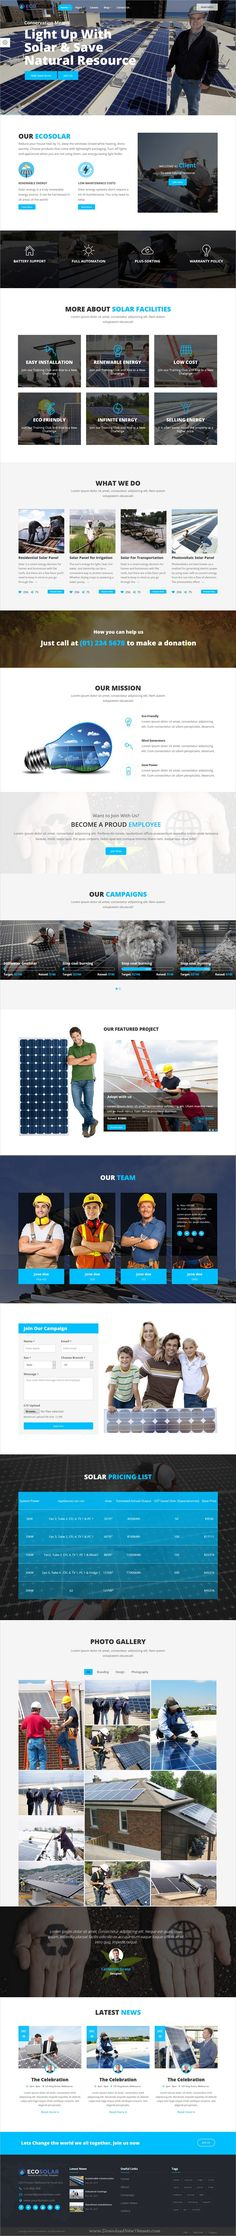 EcoSolar is a wonderful 2in1 responsive #HTML #bootstrap template for environment, recycling, #solar and renewable energy company websites download now➩  https://themeforest.net/item/ecosolar-nonprofit-environment-recyling-solar-html5-template/19393499?ref=Datasata